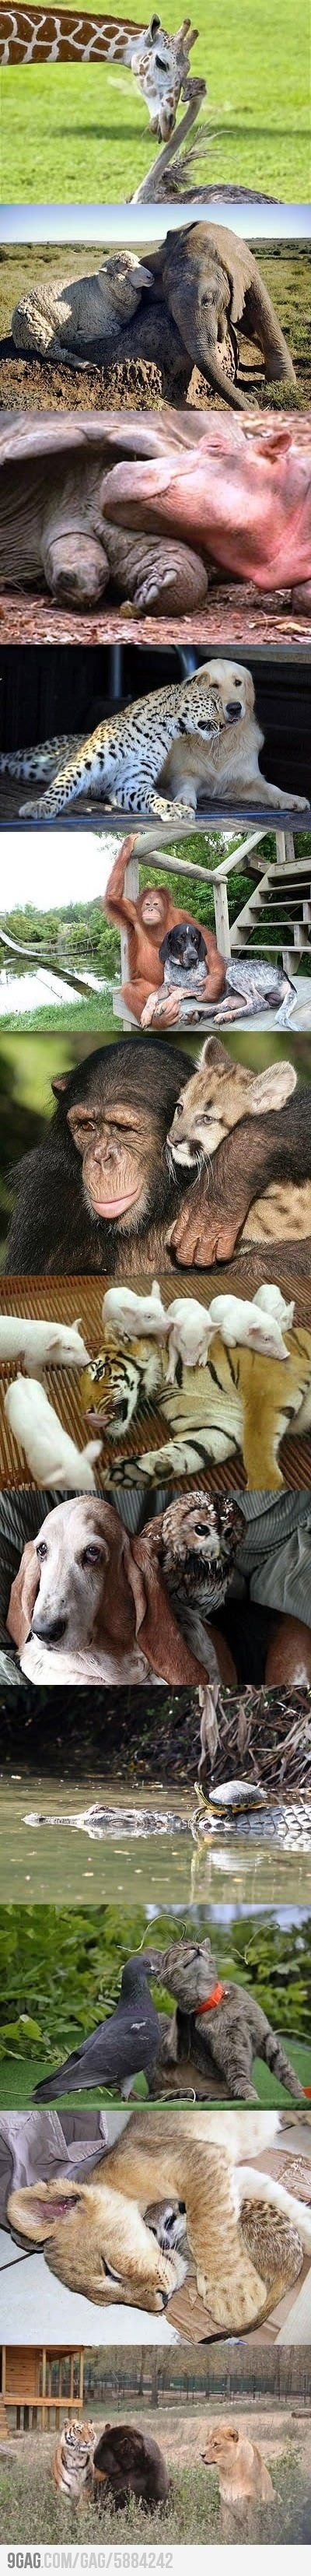 It doesn't really matter if you are black, white, yellow, Jewish, Christian... you are aware that blood flows always red, everybody feels pain equally and each set of eyes cries the same,  colorless, tears. Even animals learned to set aside differences and live in harmony...